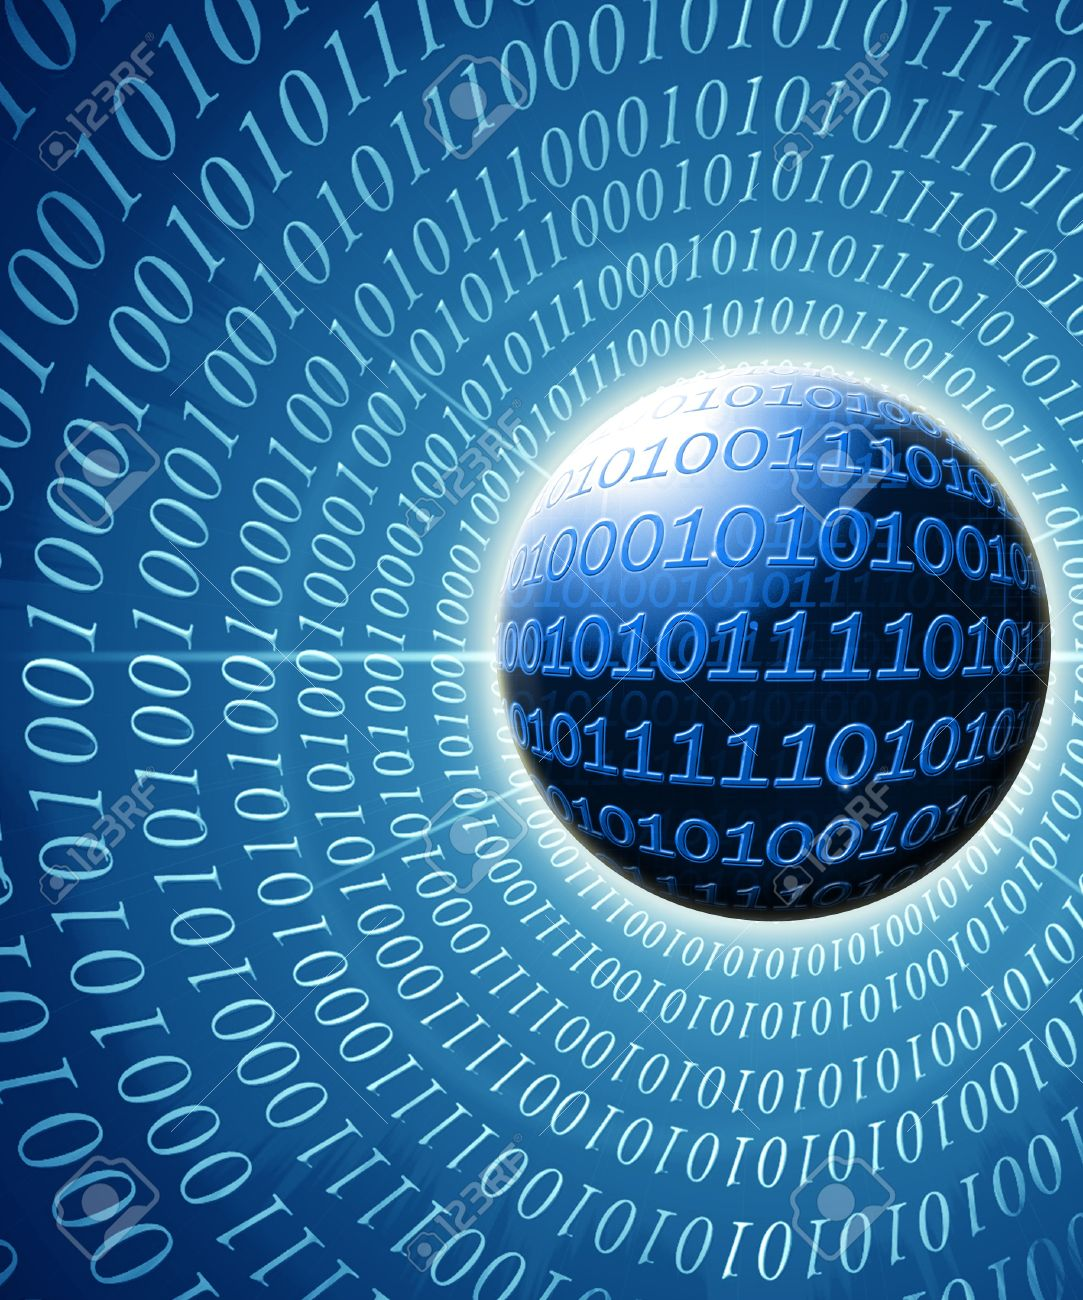 Visual representation of a digital world with bits and bytes Stock Photo - 14840669